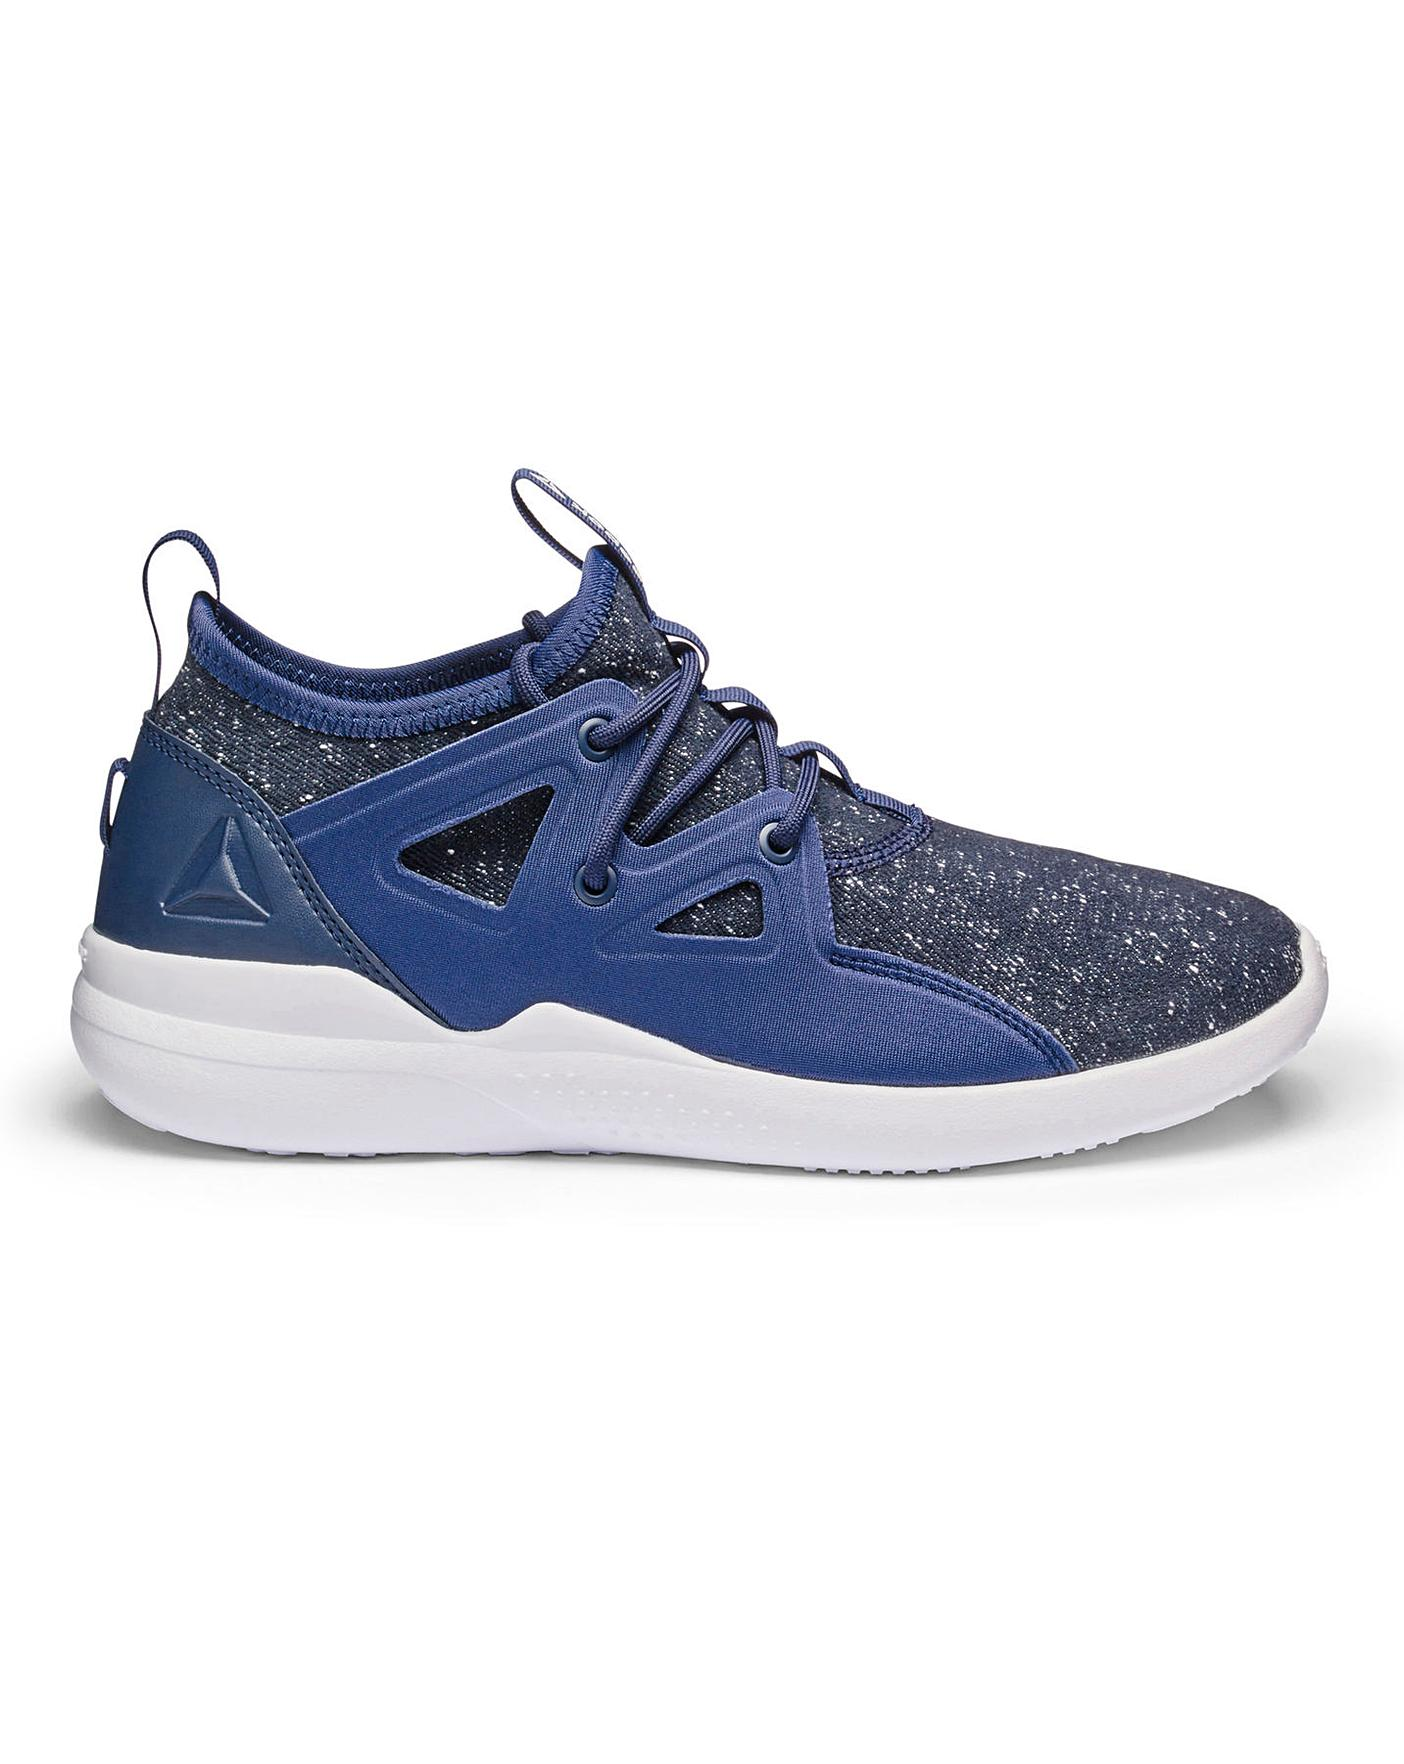 Reebok Upurtempo 1.0 Trainers | Simply Be